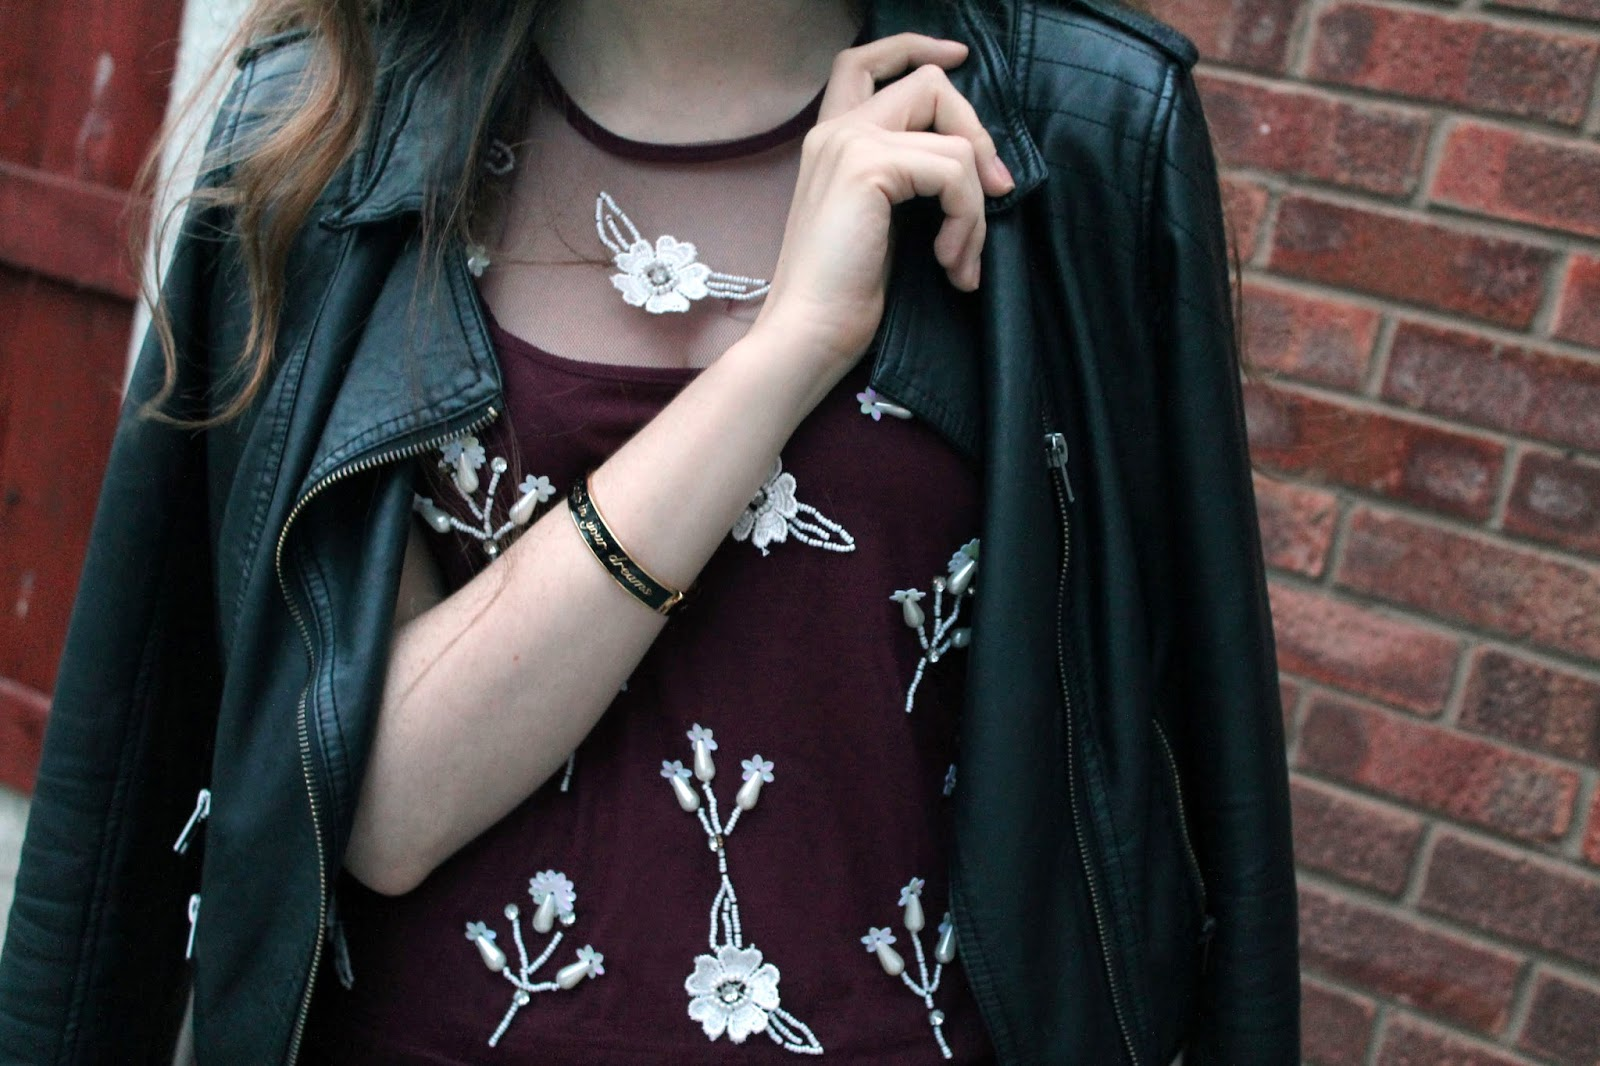 disney couture asos bracelet with glamorous embellished top and leather jacket worn over shoudlers